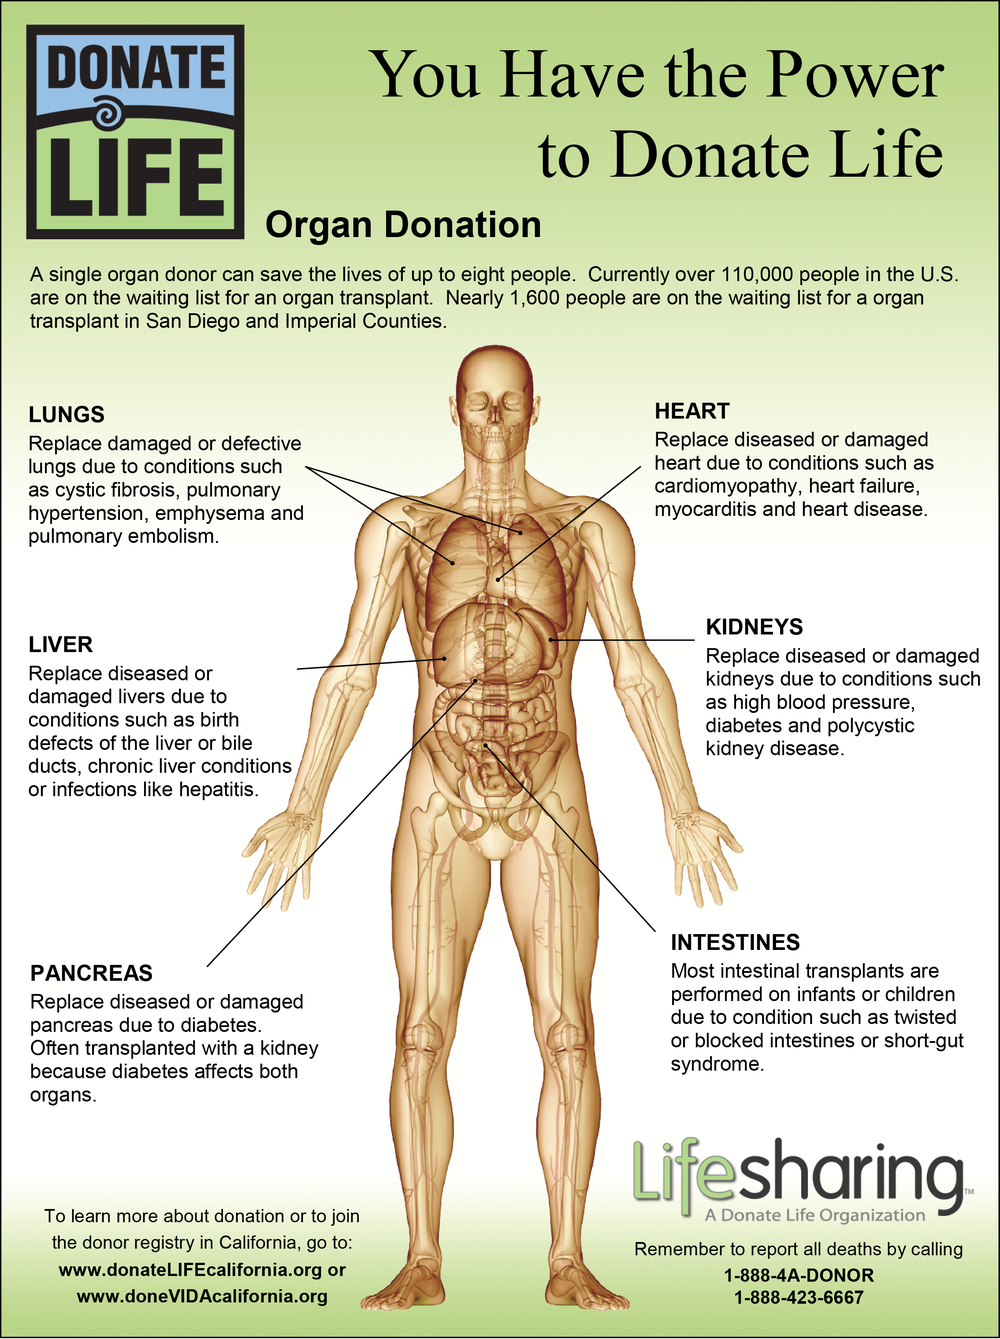 Here is an example of an organization supporting and explaining what your organs can do for someone else.